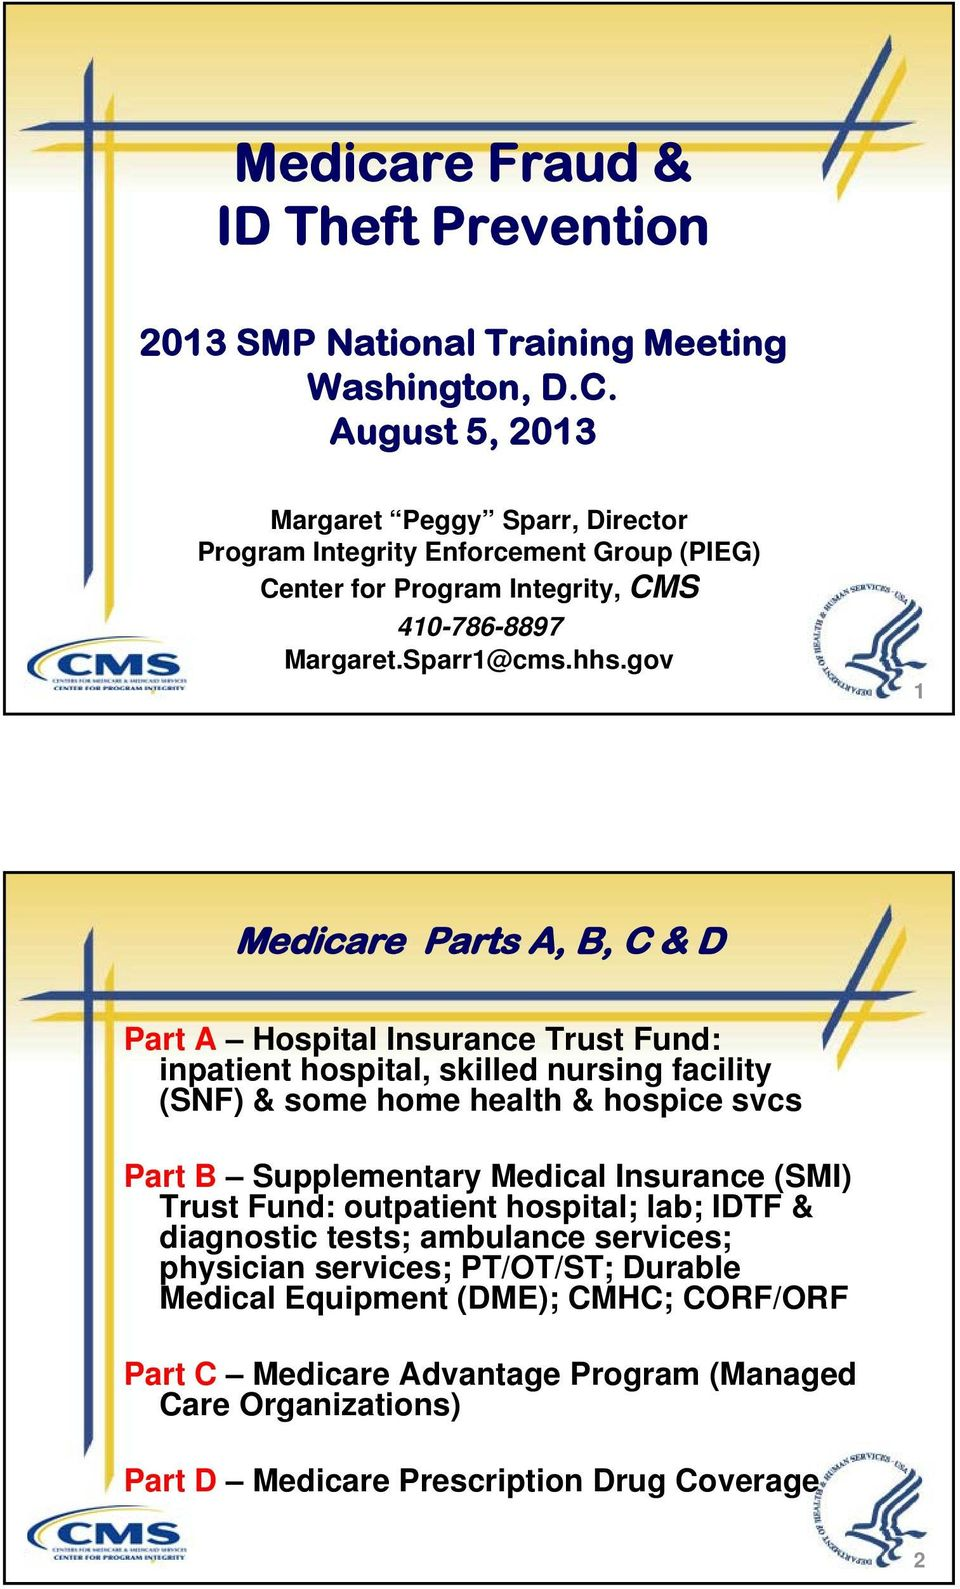 gov 1 Medicare Parts A, B, C & D Part A Hospital Insurance Trust Fund: inpatient hospital, skilled nursing facility (SNF) & some home health & hospice svcs Part B Supplementary